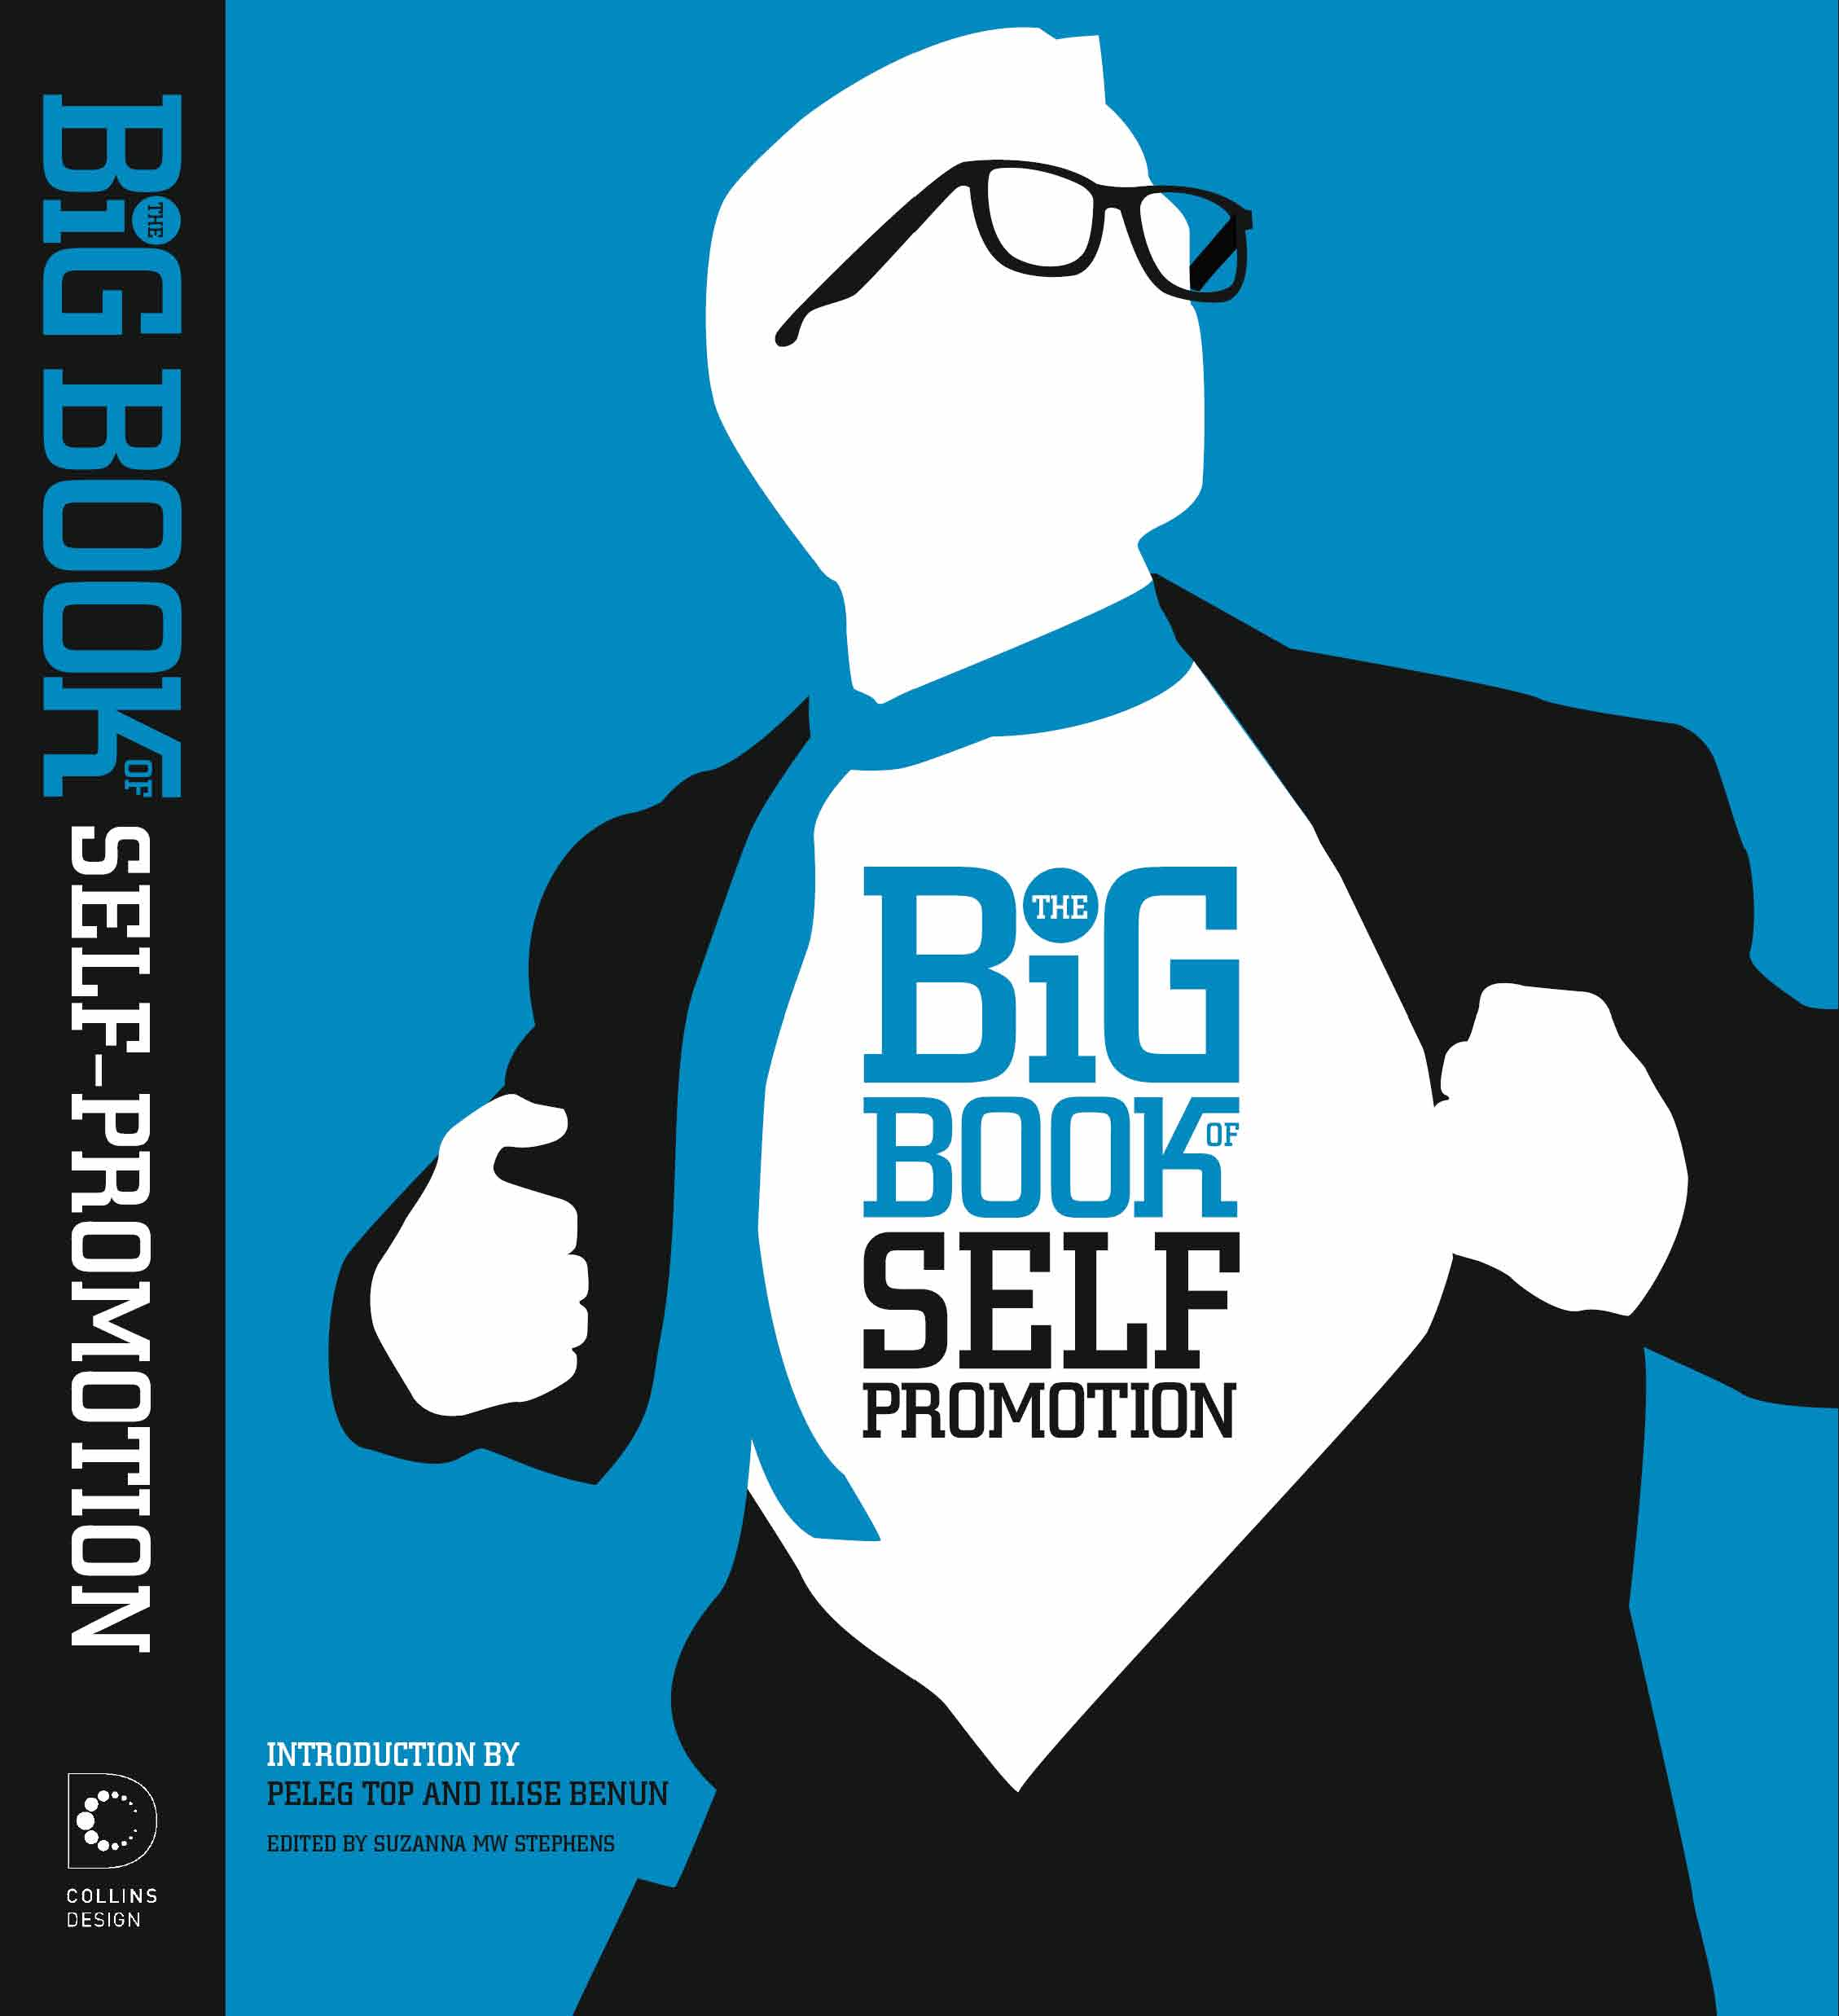 The Big Book of Self-Promotion